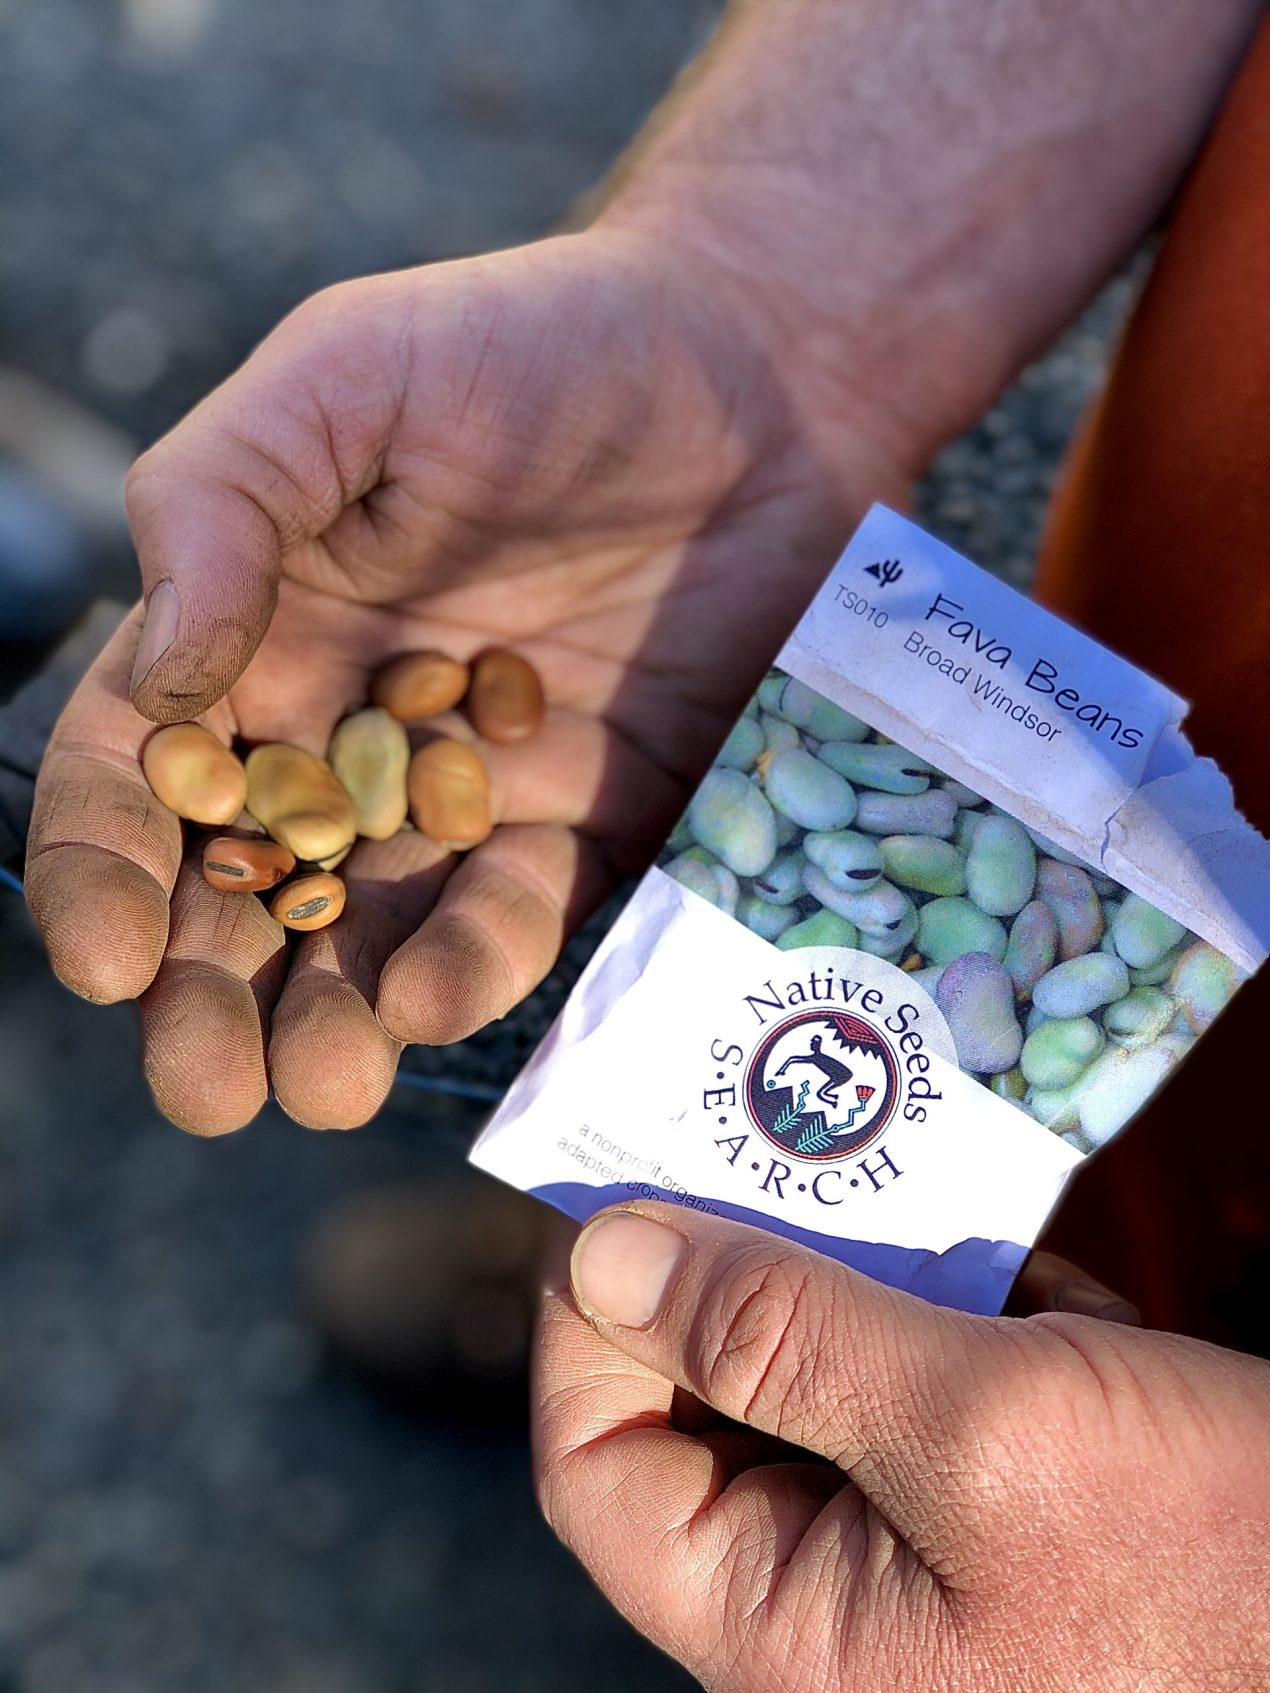 One hand holding a seed packet that reads Fava Beans with Native Seeds Search packaging and the other hand holding the seeds palm up